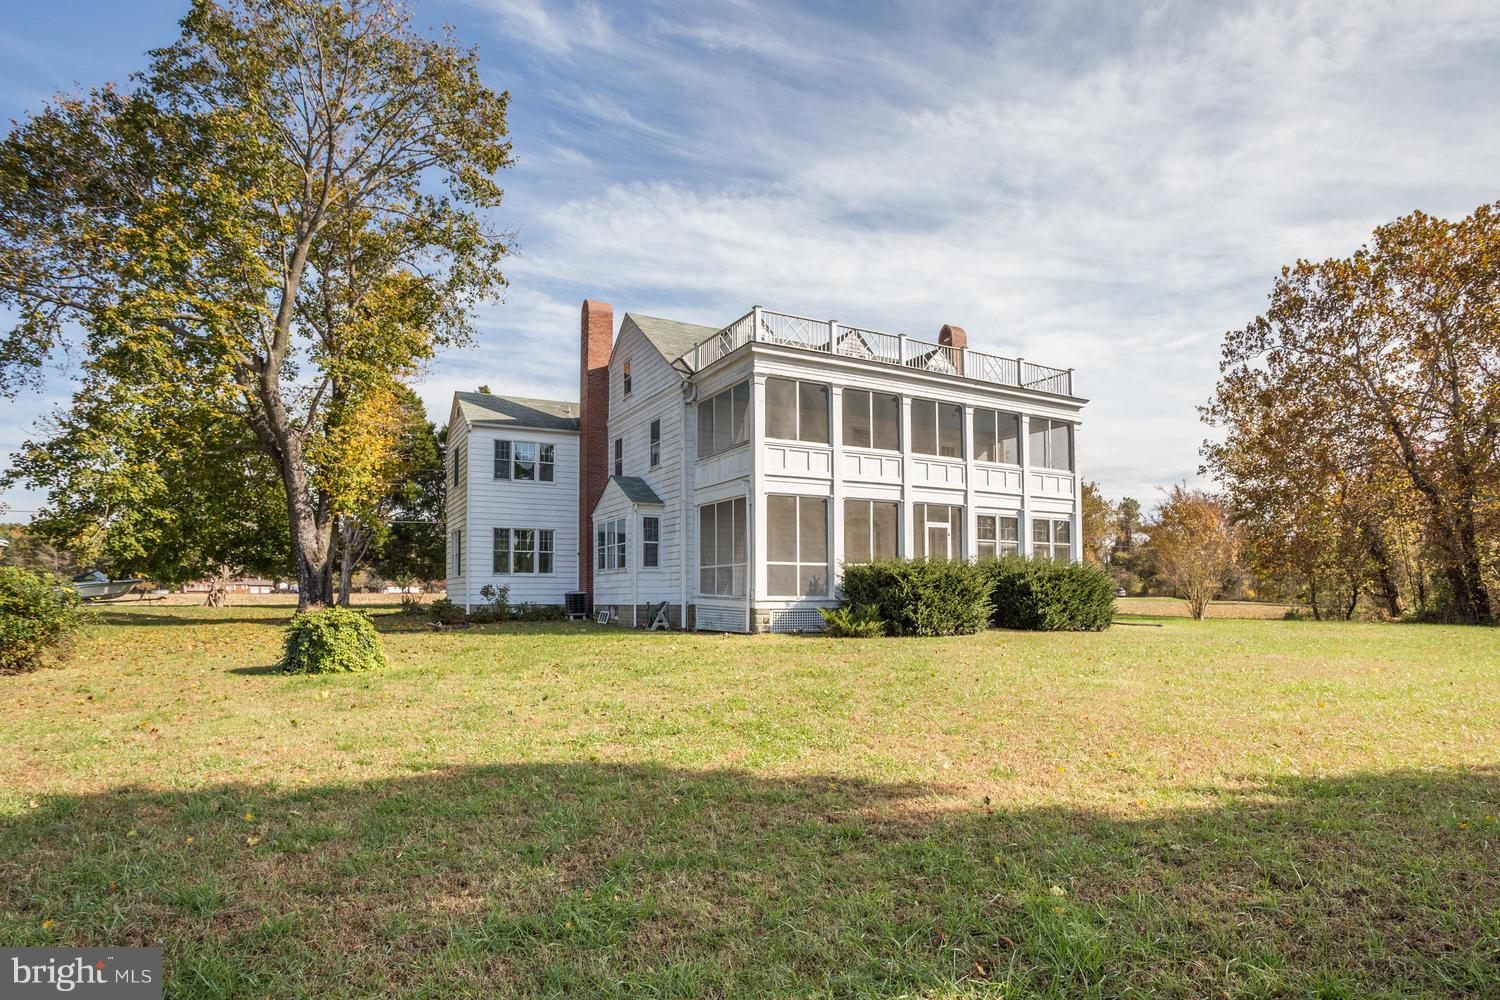 5920 RAY NORWOOD ROAD, PRINCE FREDERICK, MD 20678